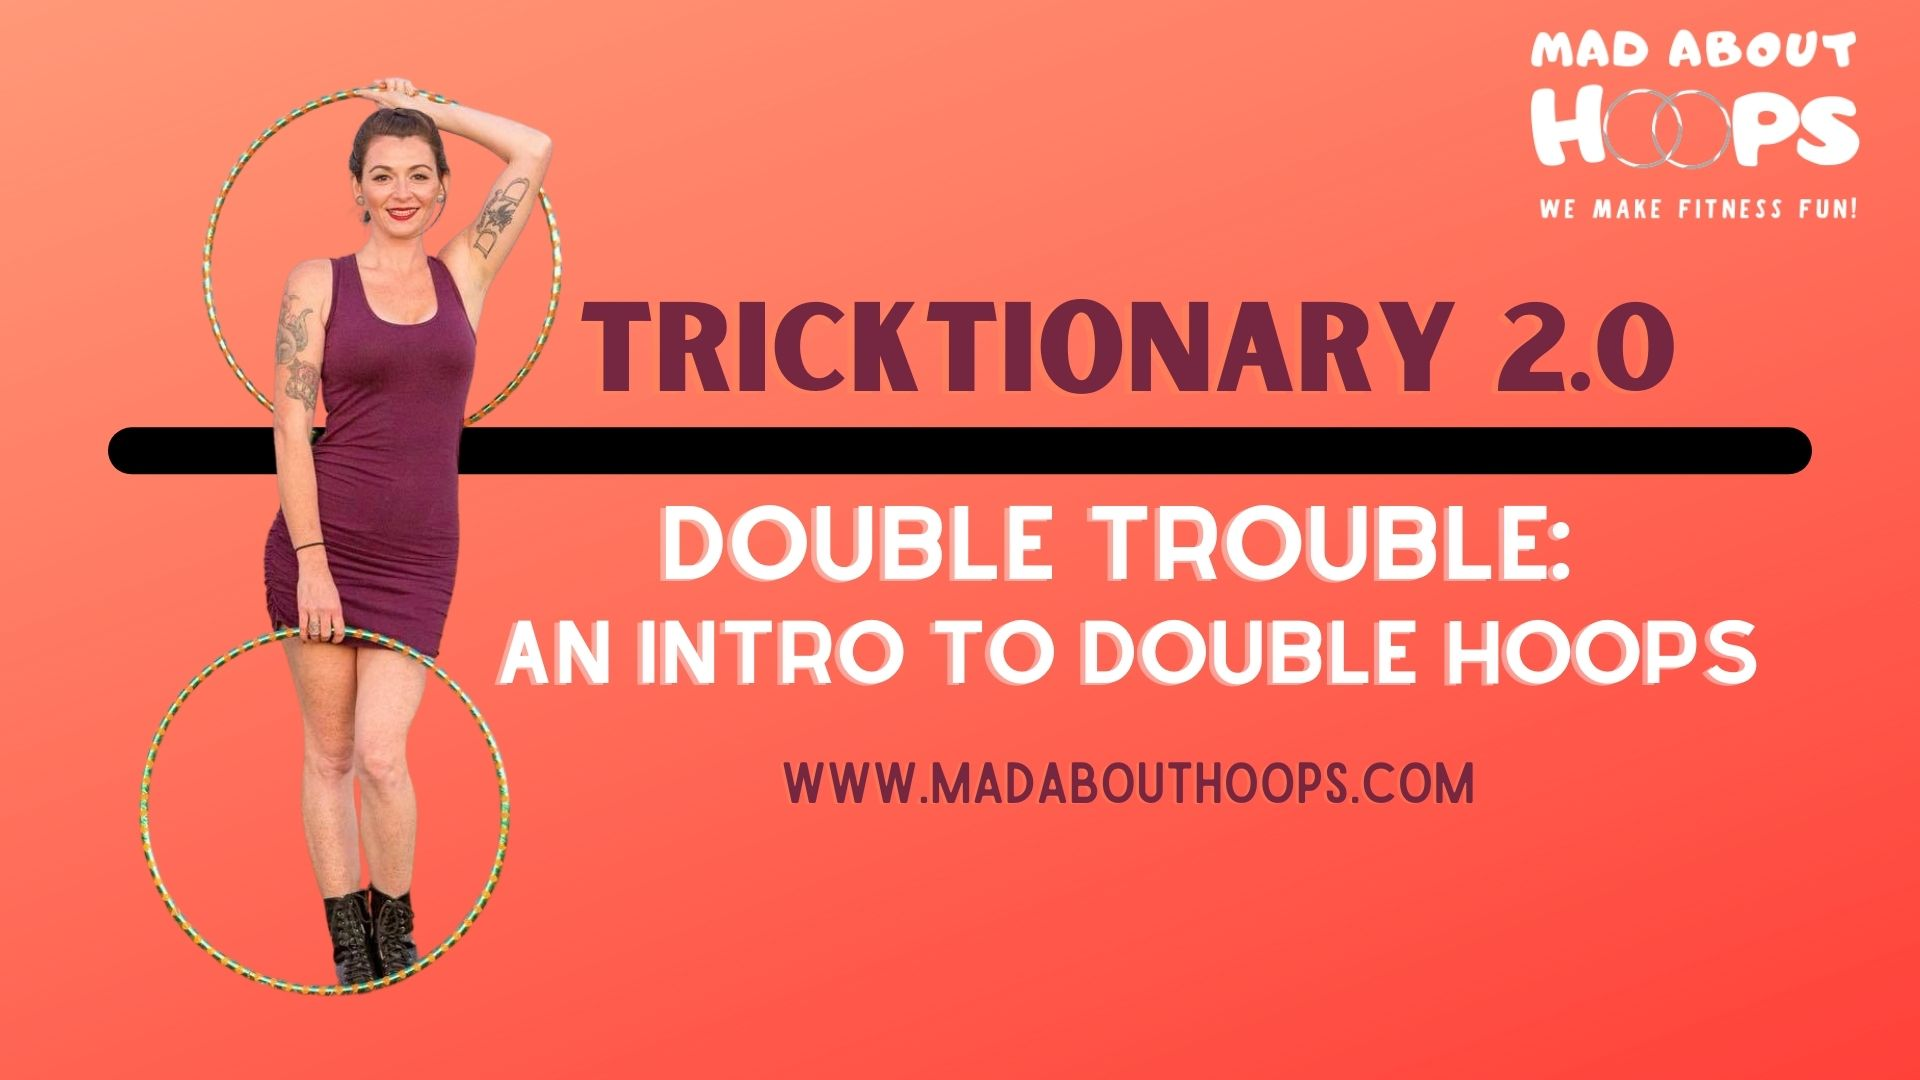 Tricktionary 2.0